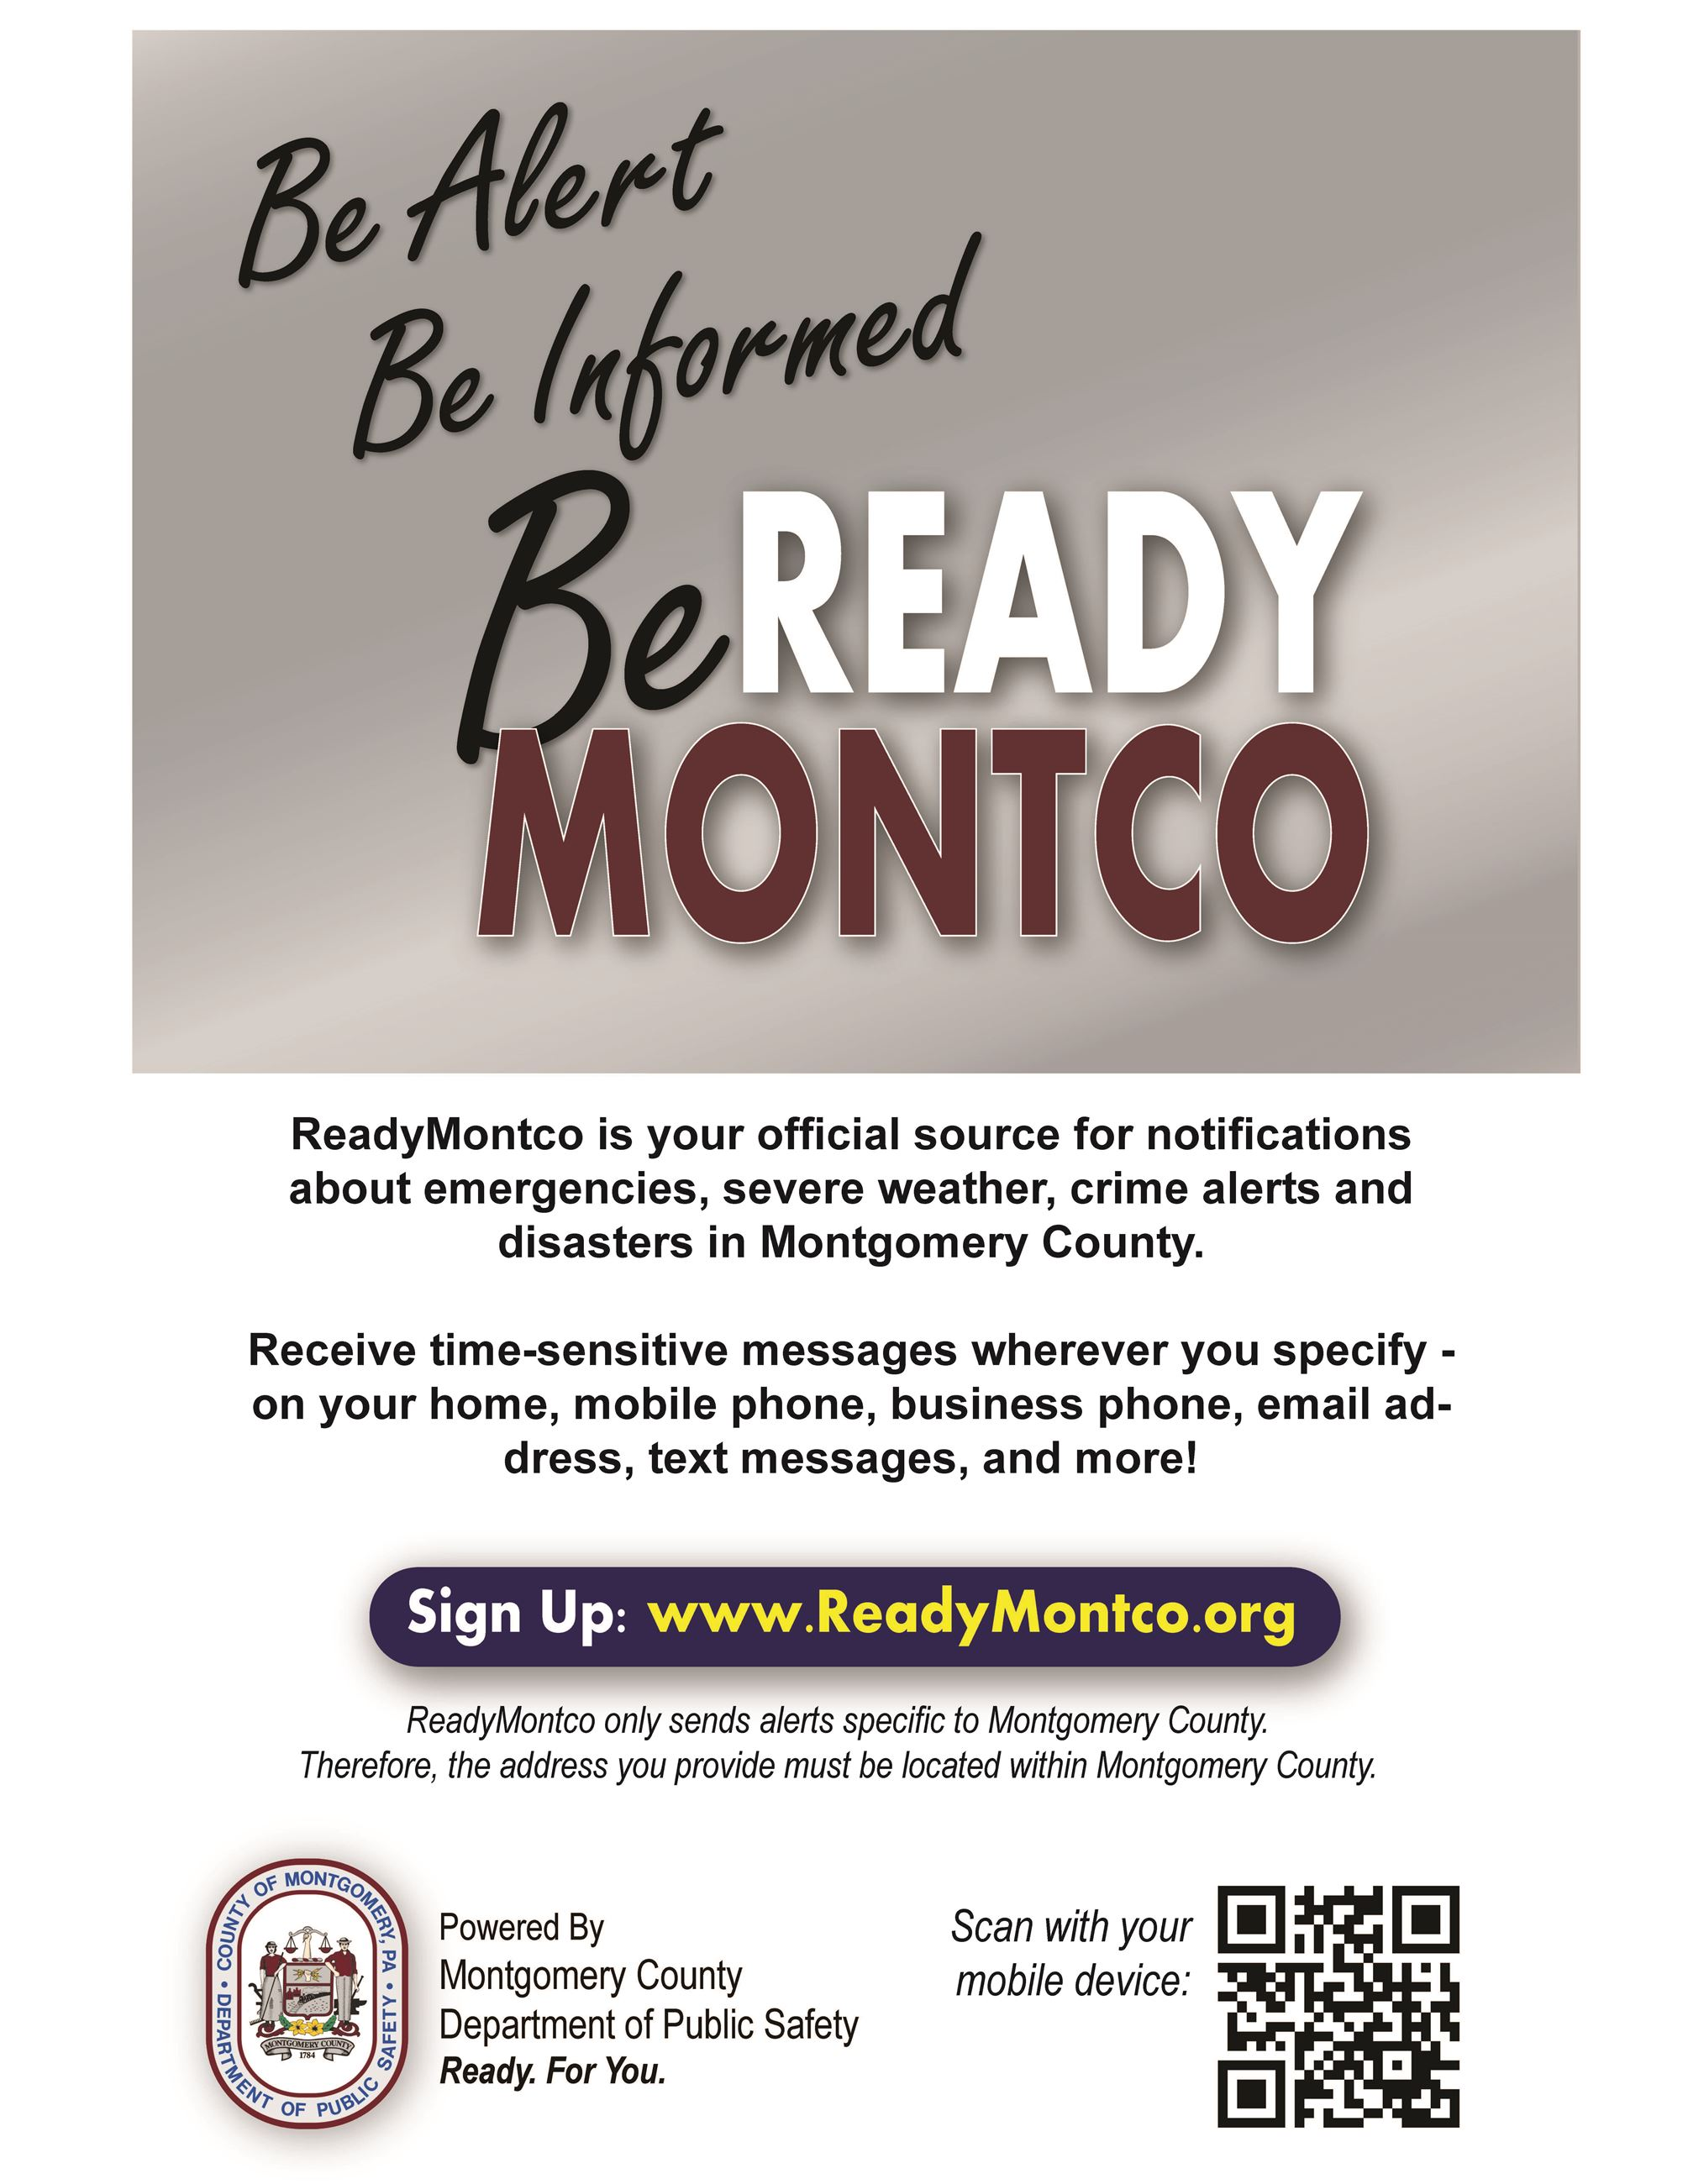 Ready MontCo Flyer - Be Sure to Sign Up!